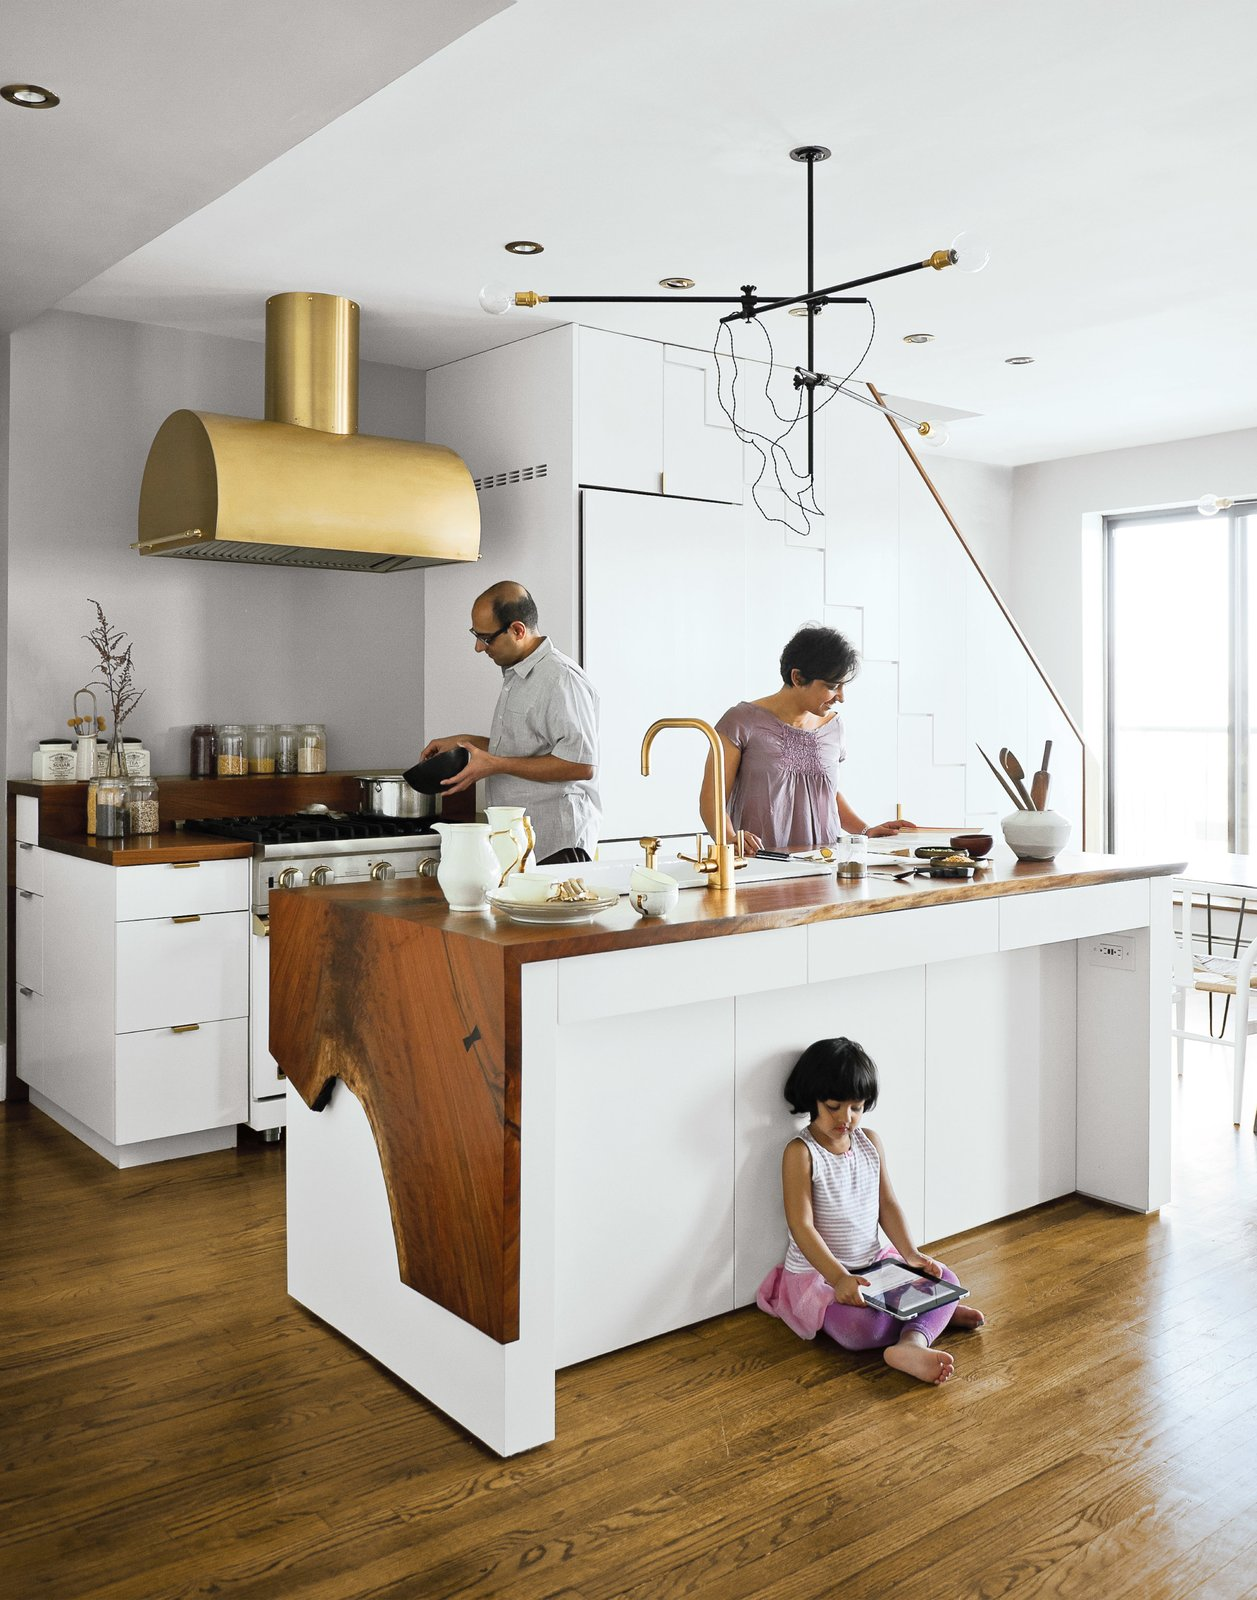 The Mandayam–Vohra family gathers under one of Workstead's signature three-arm chandeliers, shown here in its horizontal configuration. Tagged: Kitchen, White Cabinet, Medium Hardwood Floor, Wood Counter, Metal Backsplashe, and Pendant Lighting.  Small Spaces with Incredible Kitchens by Robert Gordon-Fogelson from A Minimal Yet Mighty Brooklyn Apartment